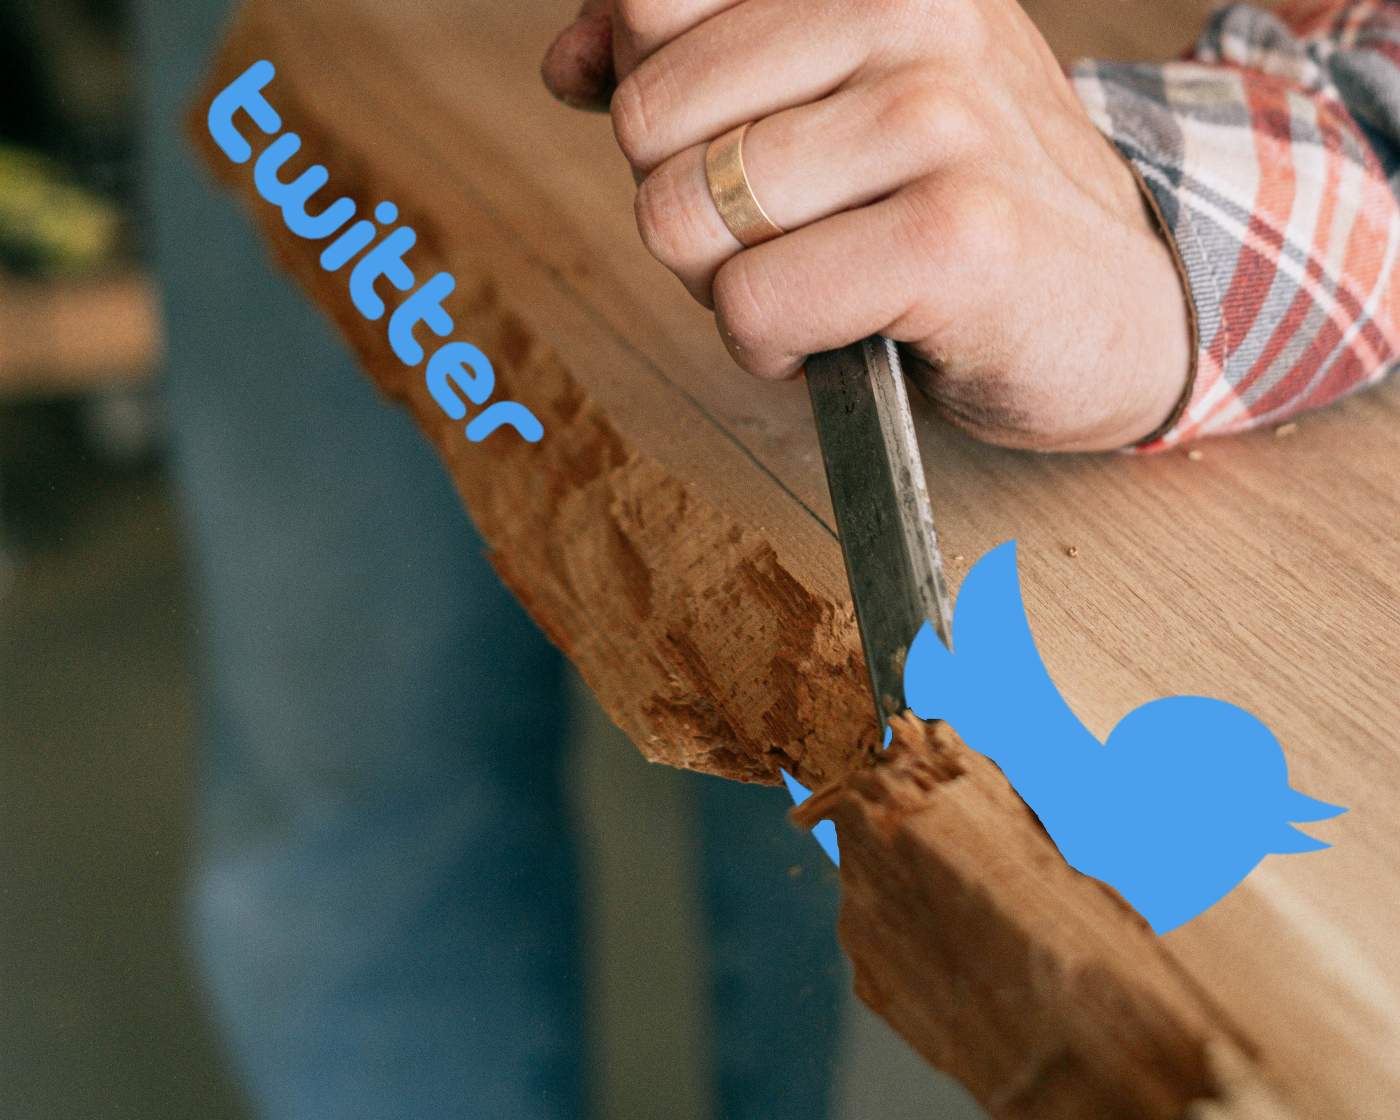 A man is using a tool to scrap away at a plank of wood. The Twitter logo bird is Photoshopped as being stuck in the wood.